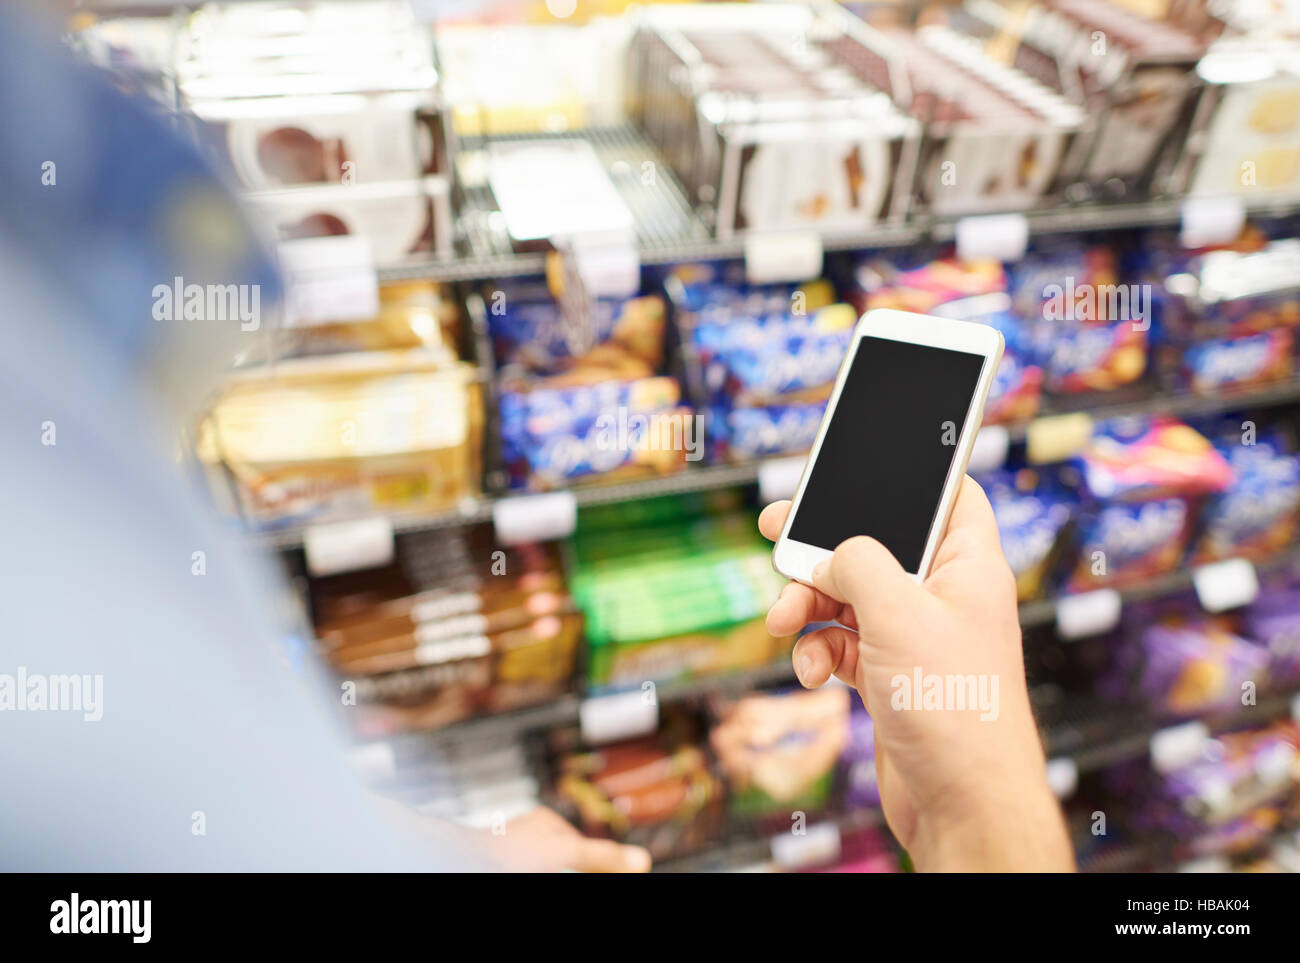 The unrecognizable person using phone - Stock Image